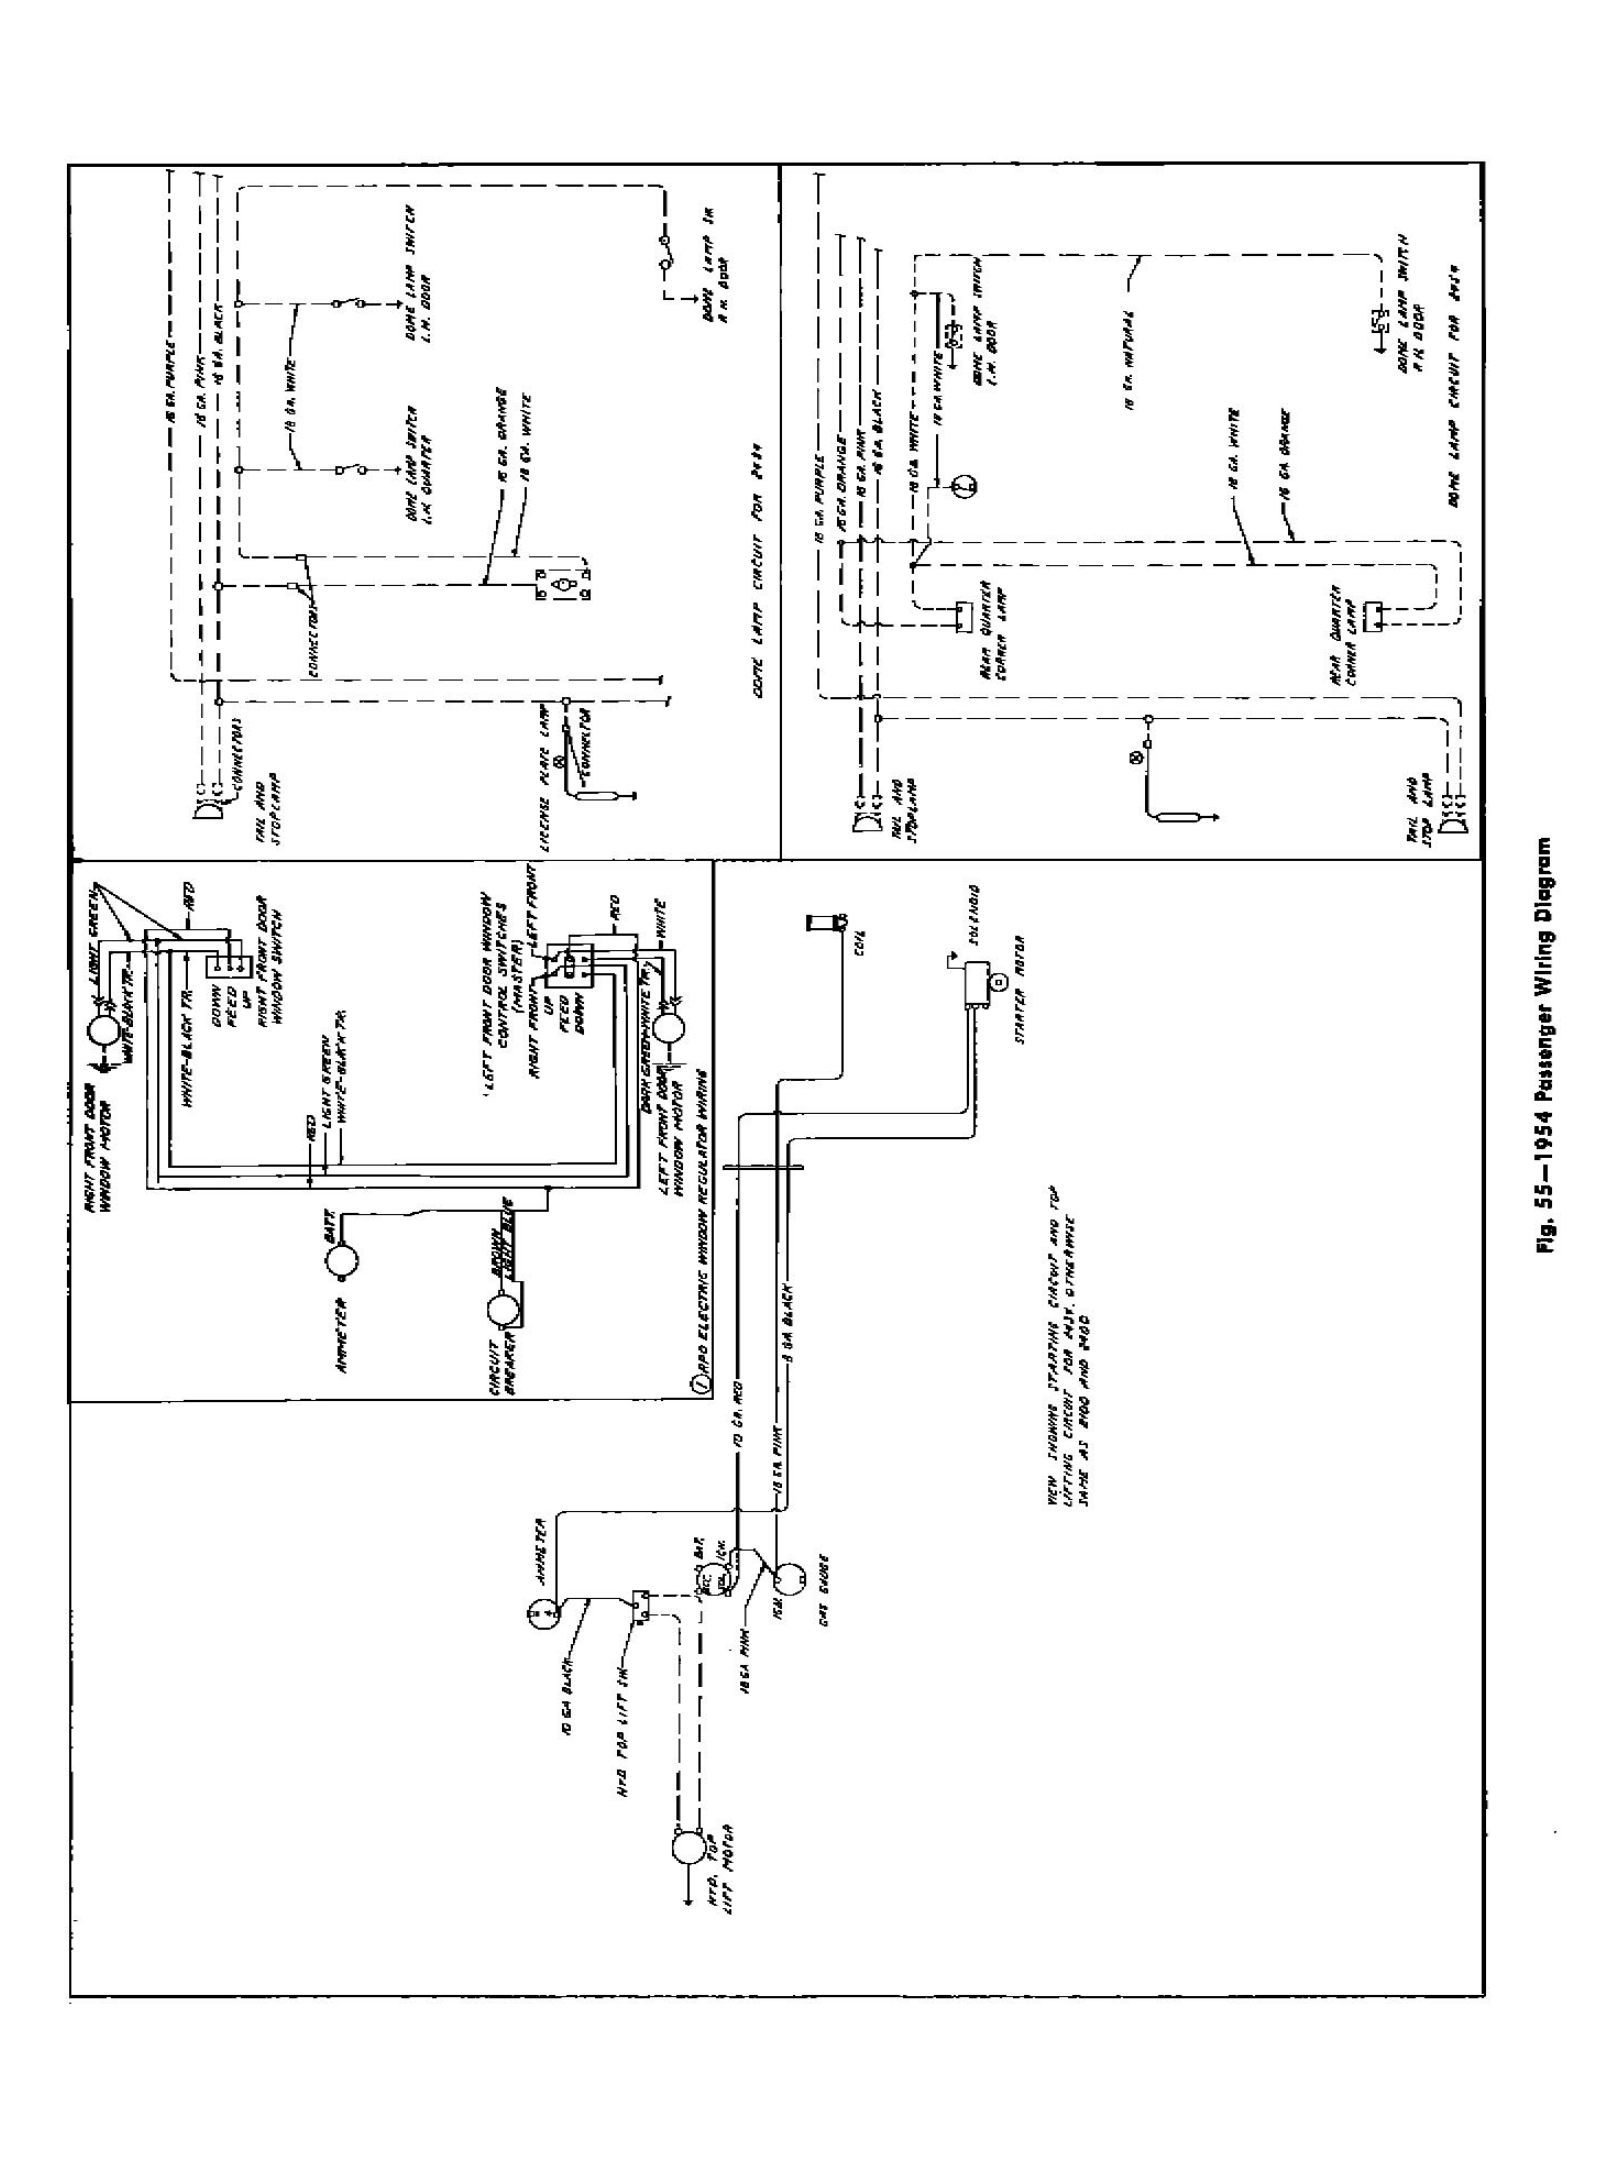 Ihc Wiring Diagram Schematic Diagrams Walk In Freezer Schematics Defrost Timer 1086 Mercury Clark Td6